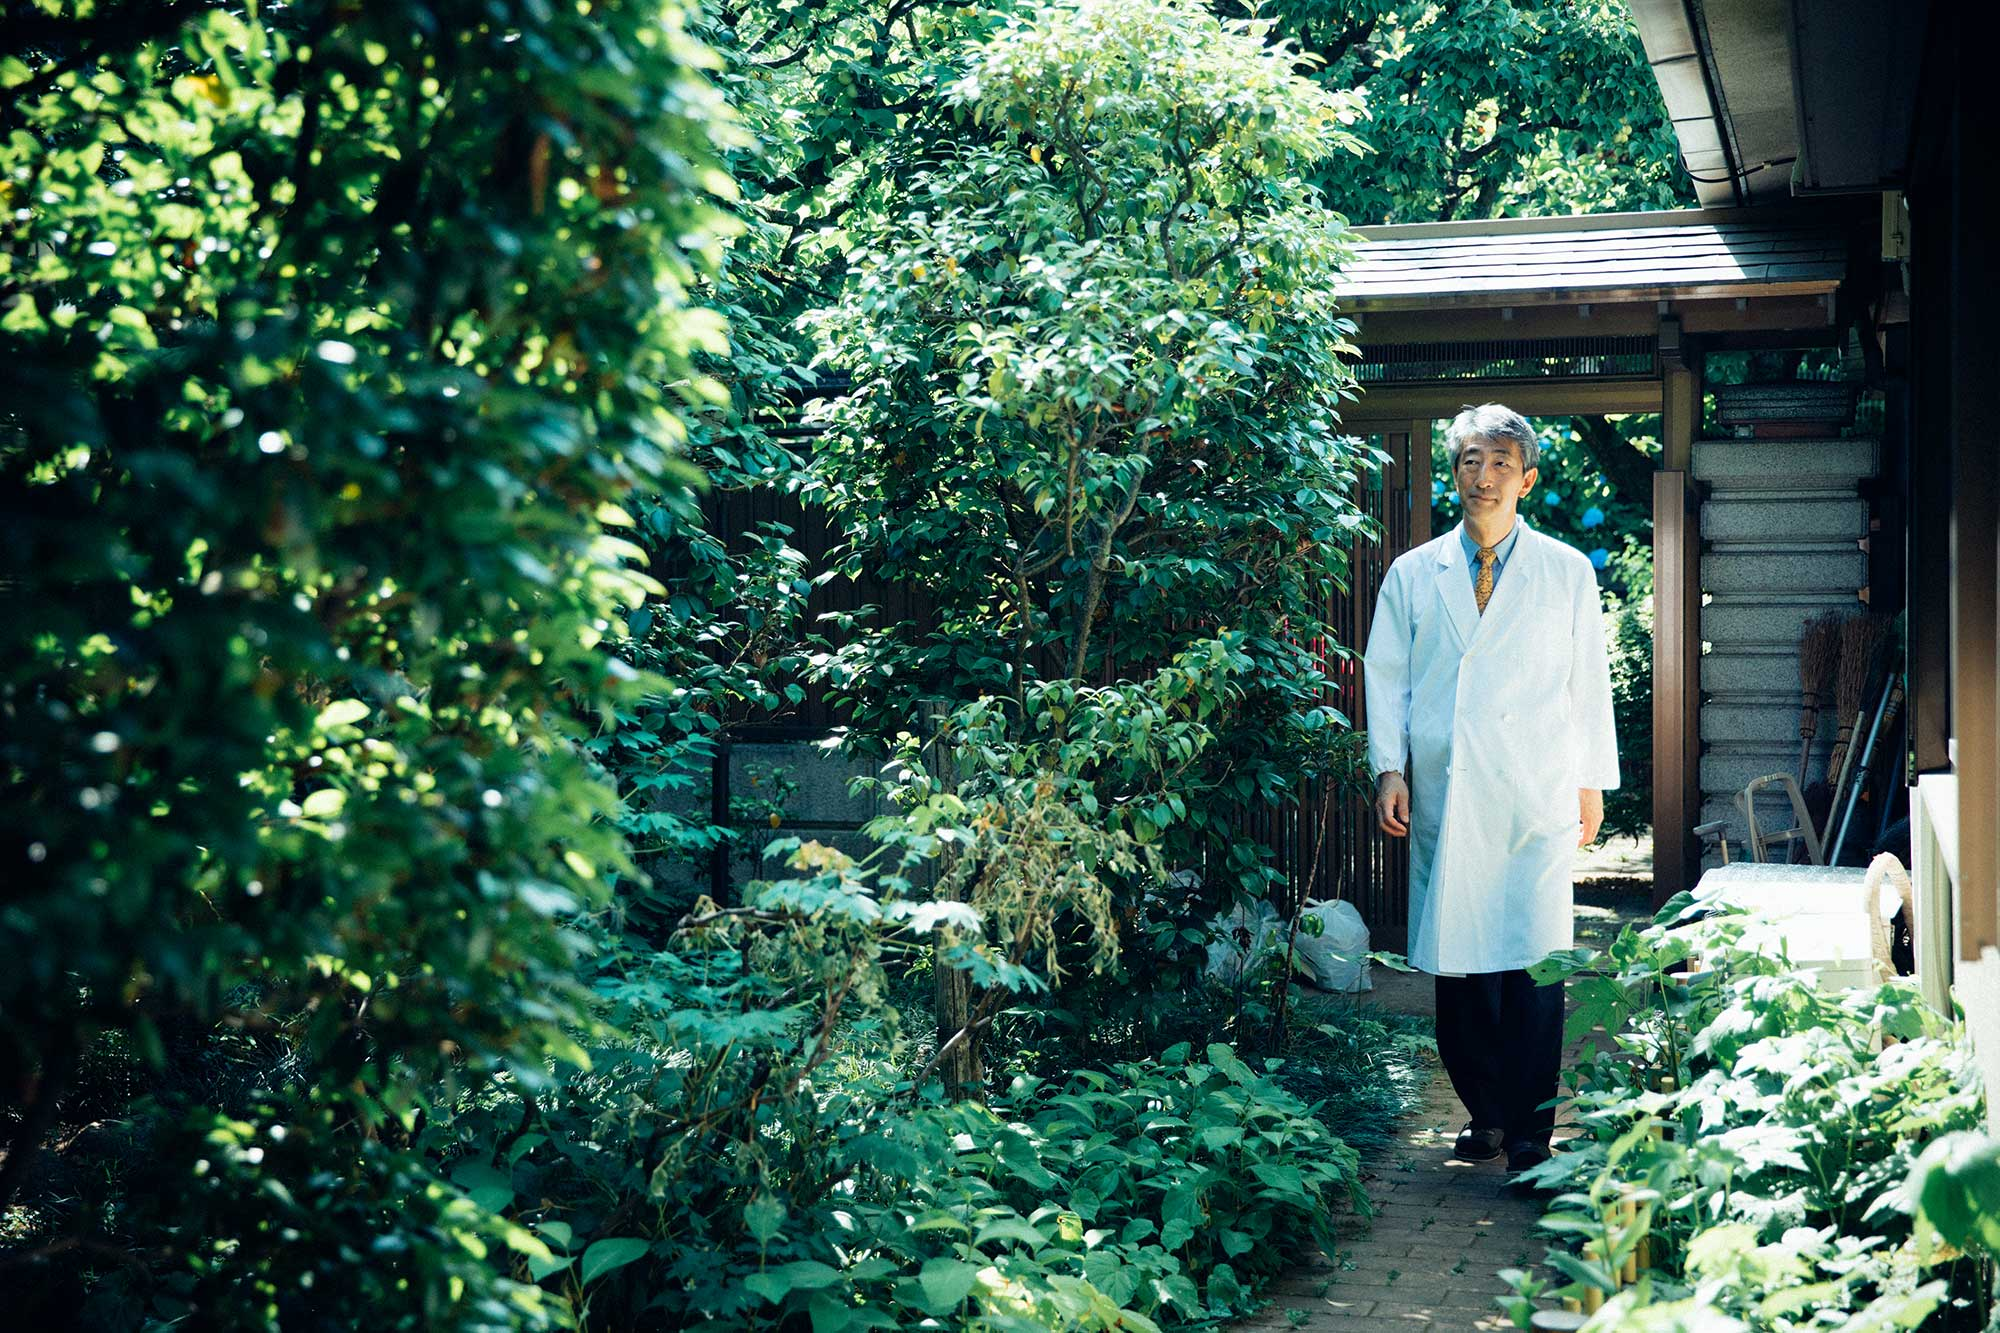 Garden of Otsuka Clinic filled with green